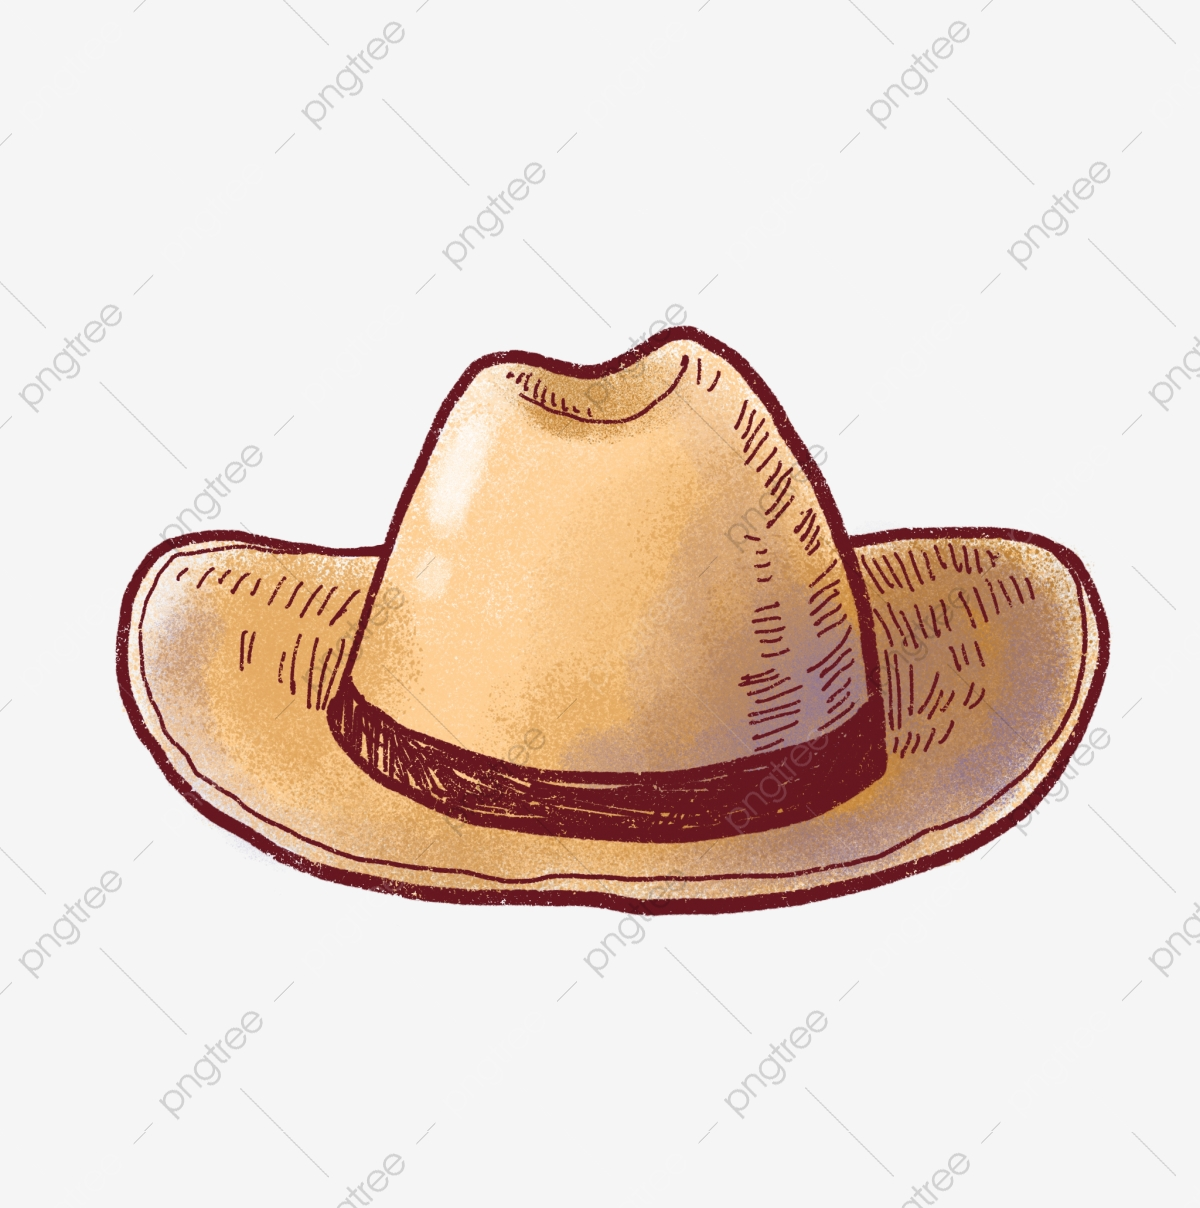 Cowboy Hat Png Images Vector And Psd Files Free Download On Pngtree All png & cliparts images on nicepng are best quality. https pngtree com freepng western cowboy hat png free material 4425250 html